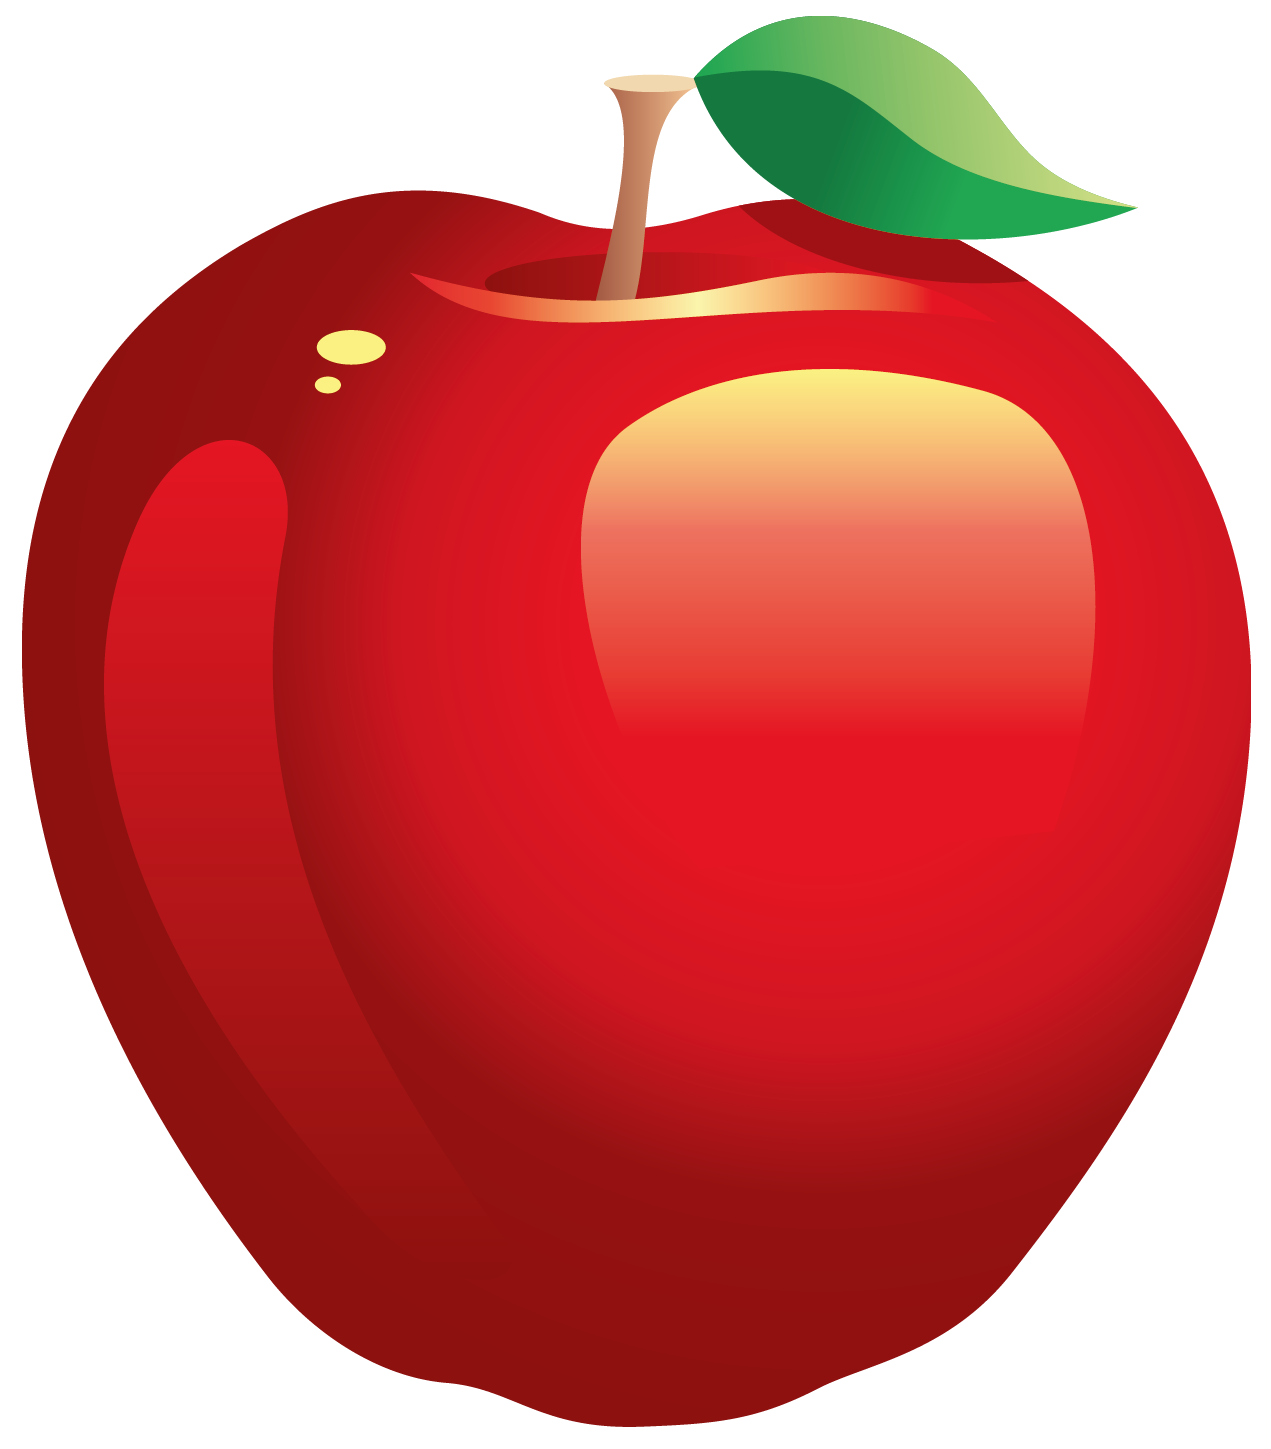 Large Painted Red Apple PNG Clipart Apple picture, Apple